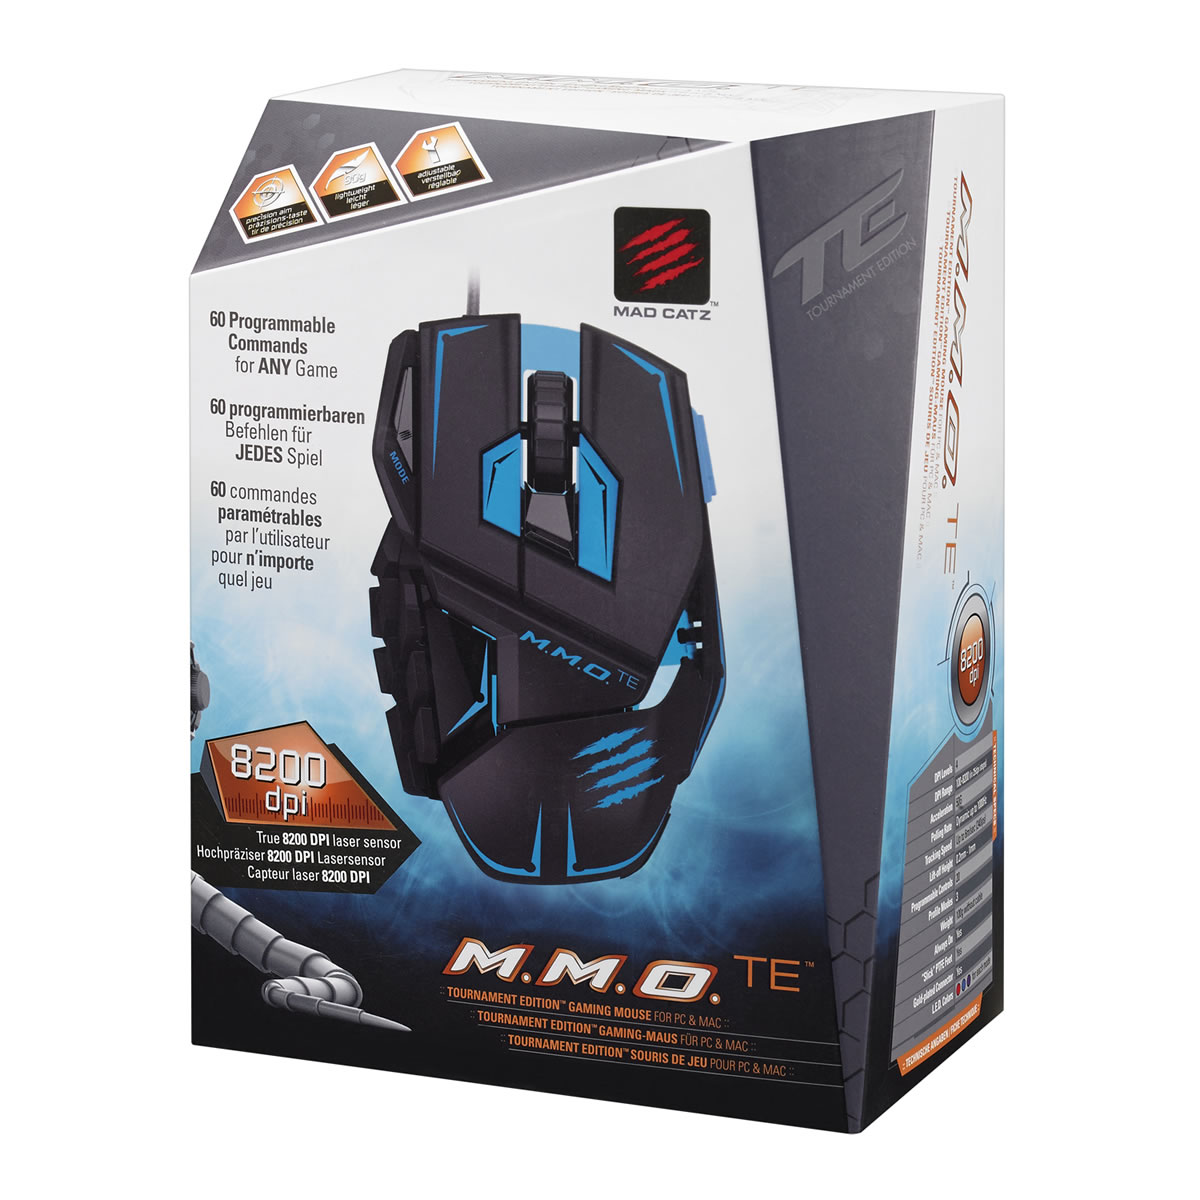 MAD CATZ CYBORG MMO TE Tournament Edition GAMING MOUSE - MATTE BLACK (PC)